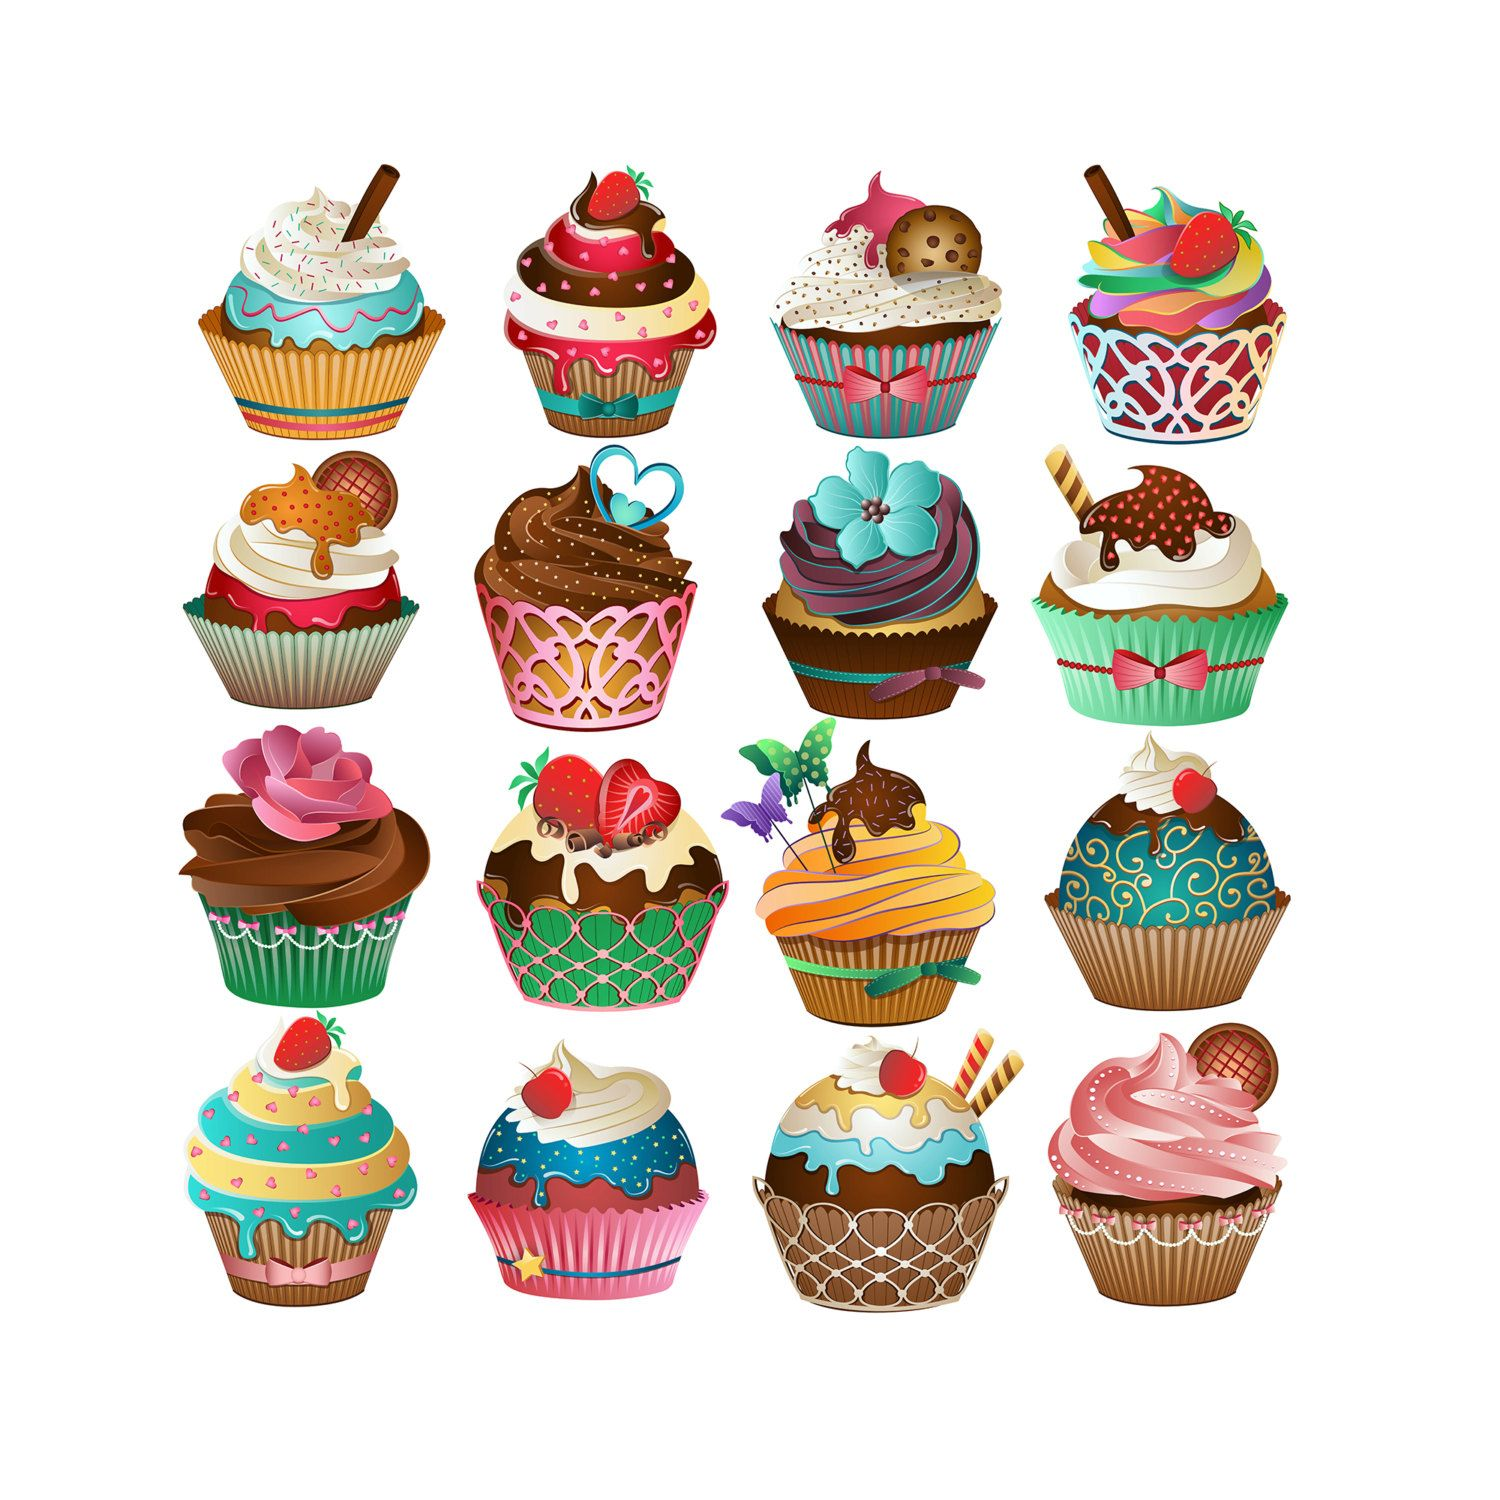 cupcake png clipart cupcake drawing pastry pastel - HD 1500×1500